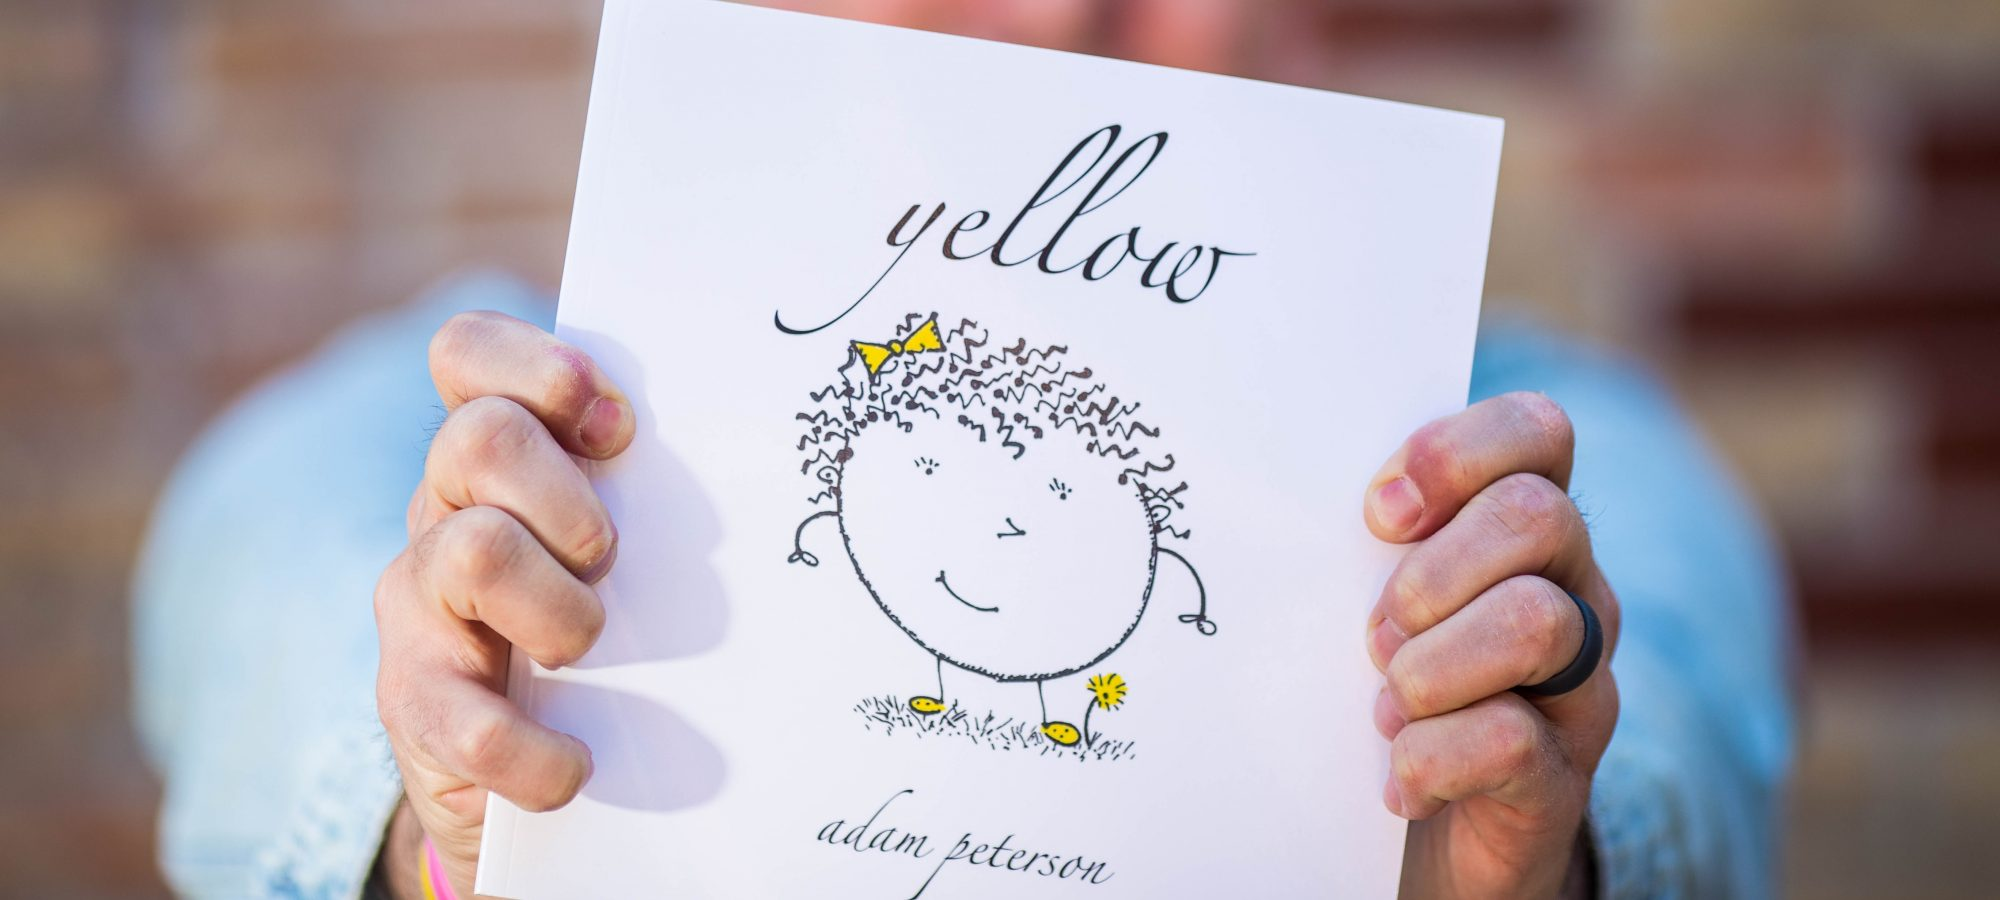 Make Someone's Day Yellow